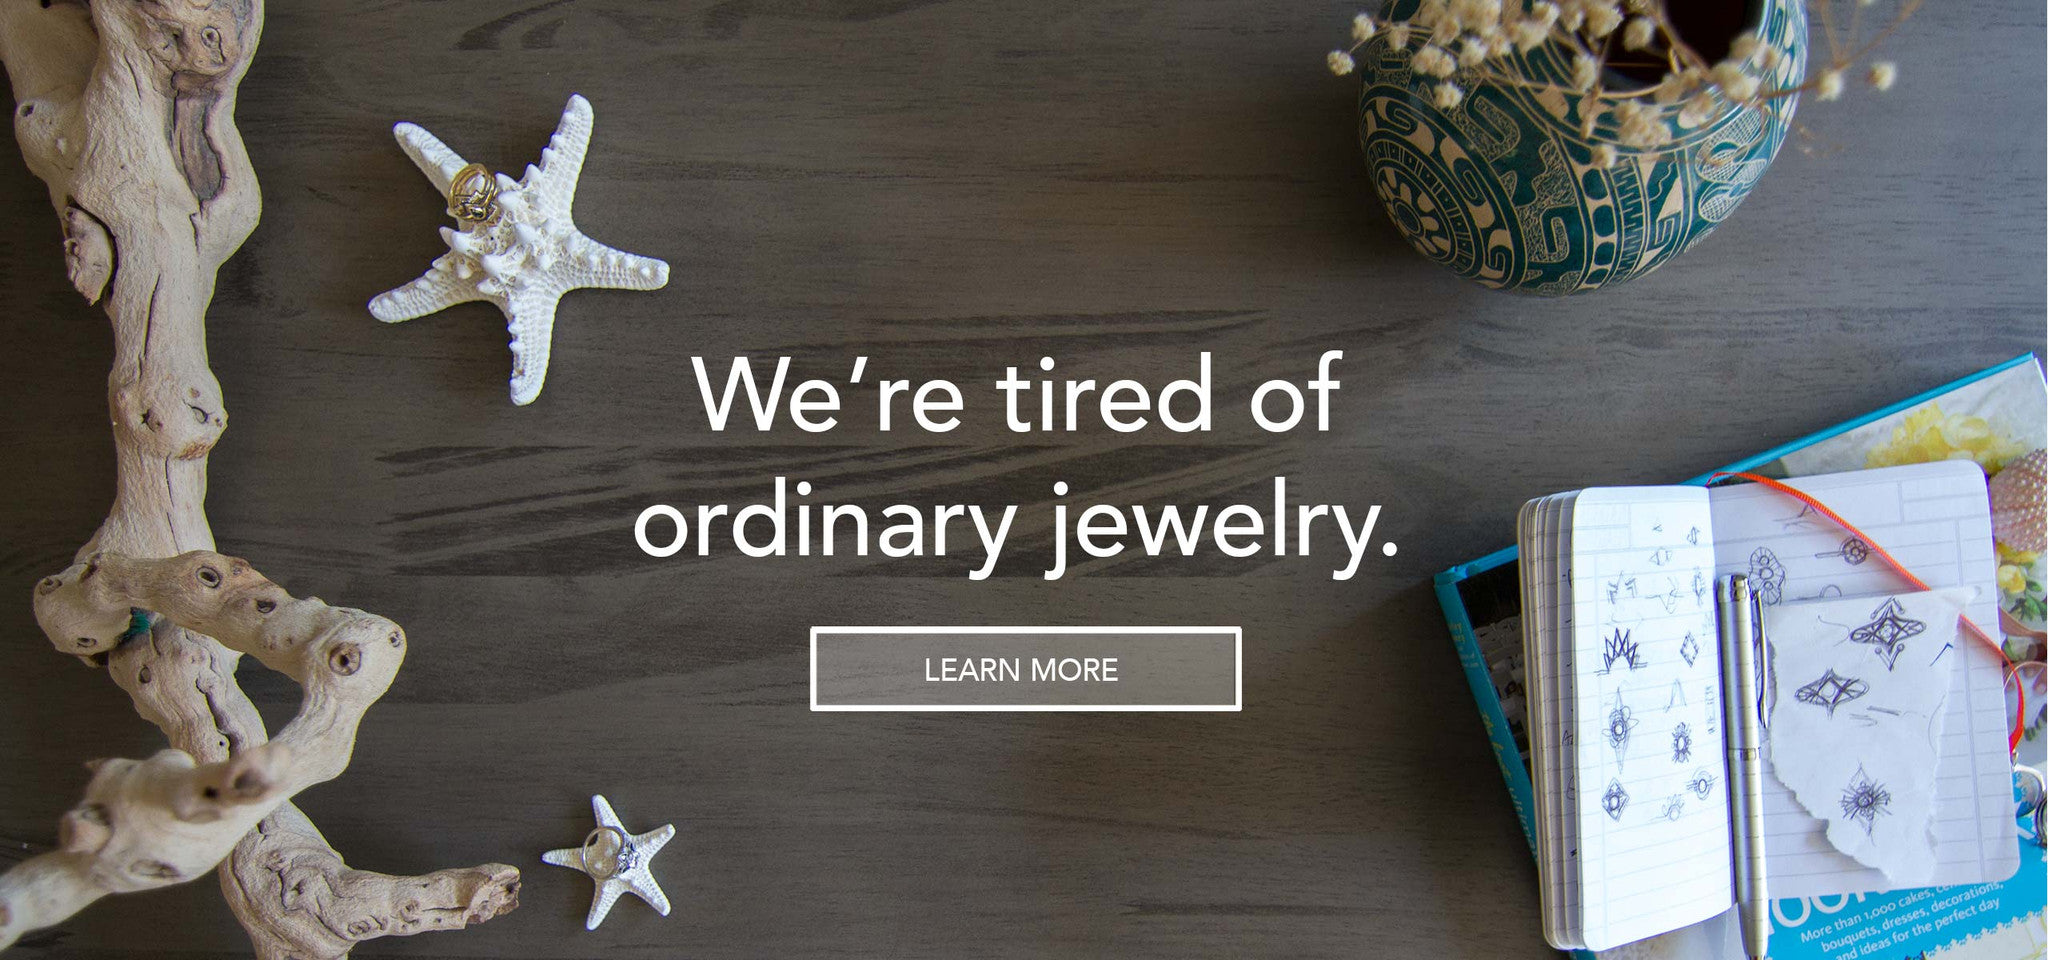 we're tired of ordinary jewelry.